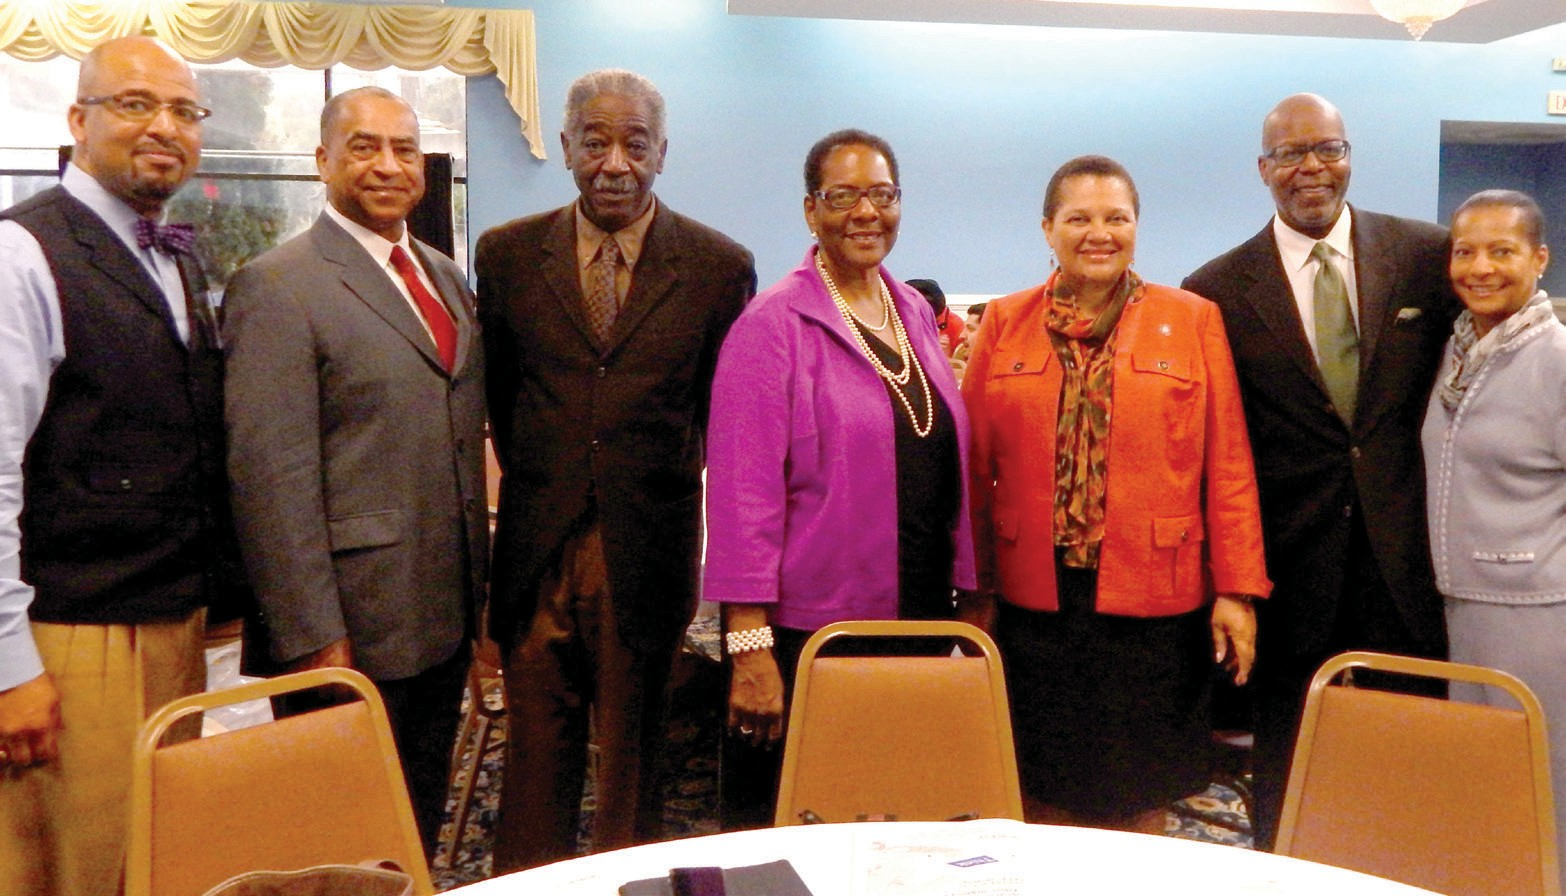 (L-R) Kenneth Irby, Faculty, the Poynter Institute; Bob Butler, president, National Association of Black Journalists; Lester Sloan, visiting professor, SSU; Wanda Lloyd, Chair, Department of Mass Communications, SSU; President Dozier; Reuben Cannon, executive producer; and Alice Cannon